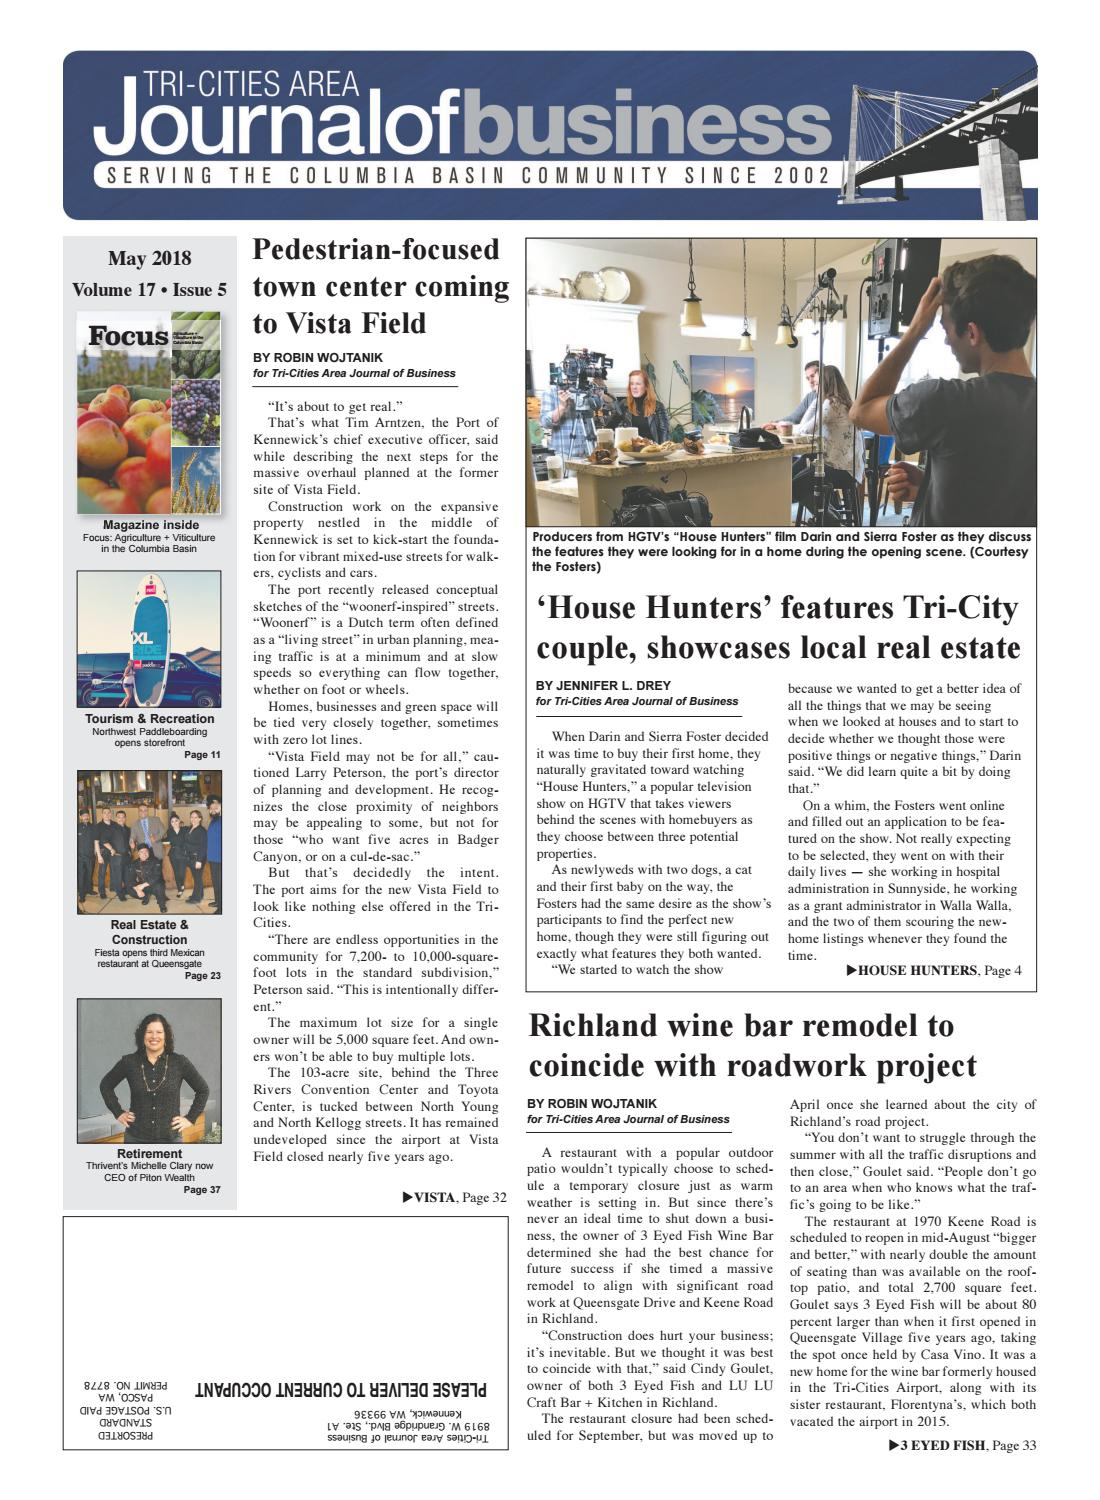 Tri-Cities Area Journal of Business -- May 2018 by Tri